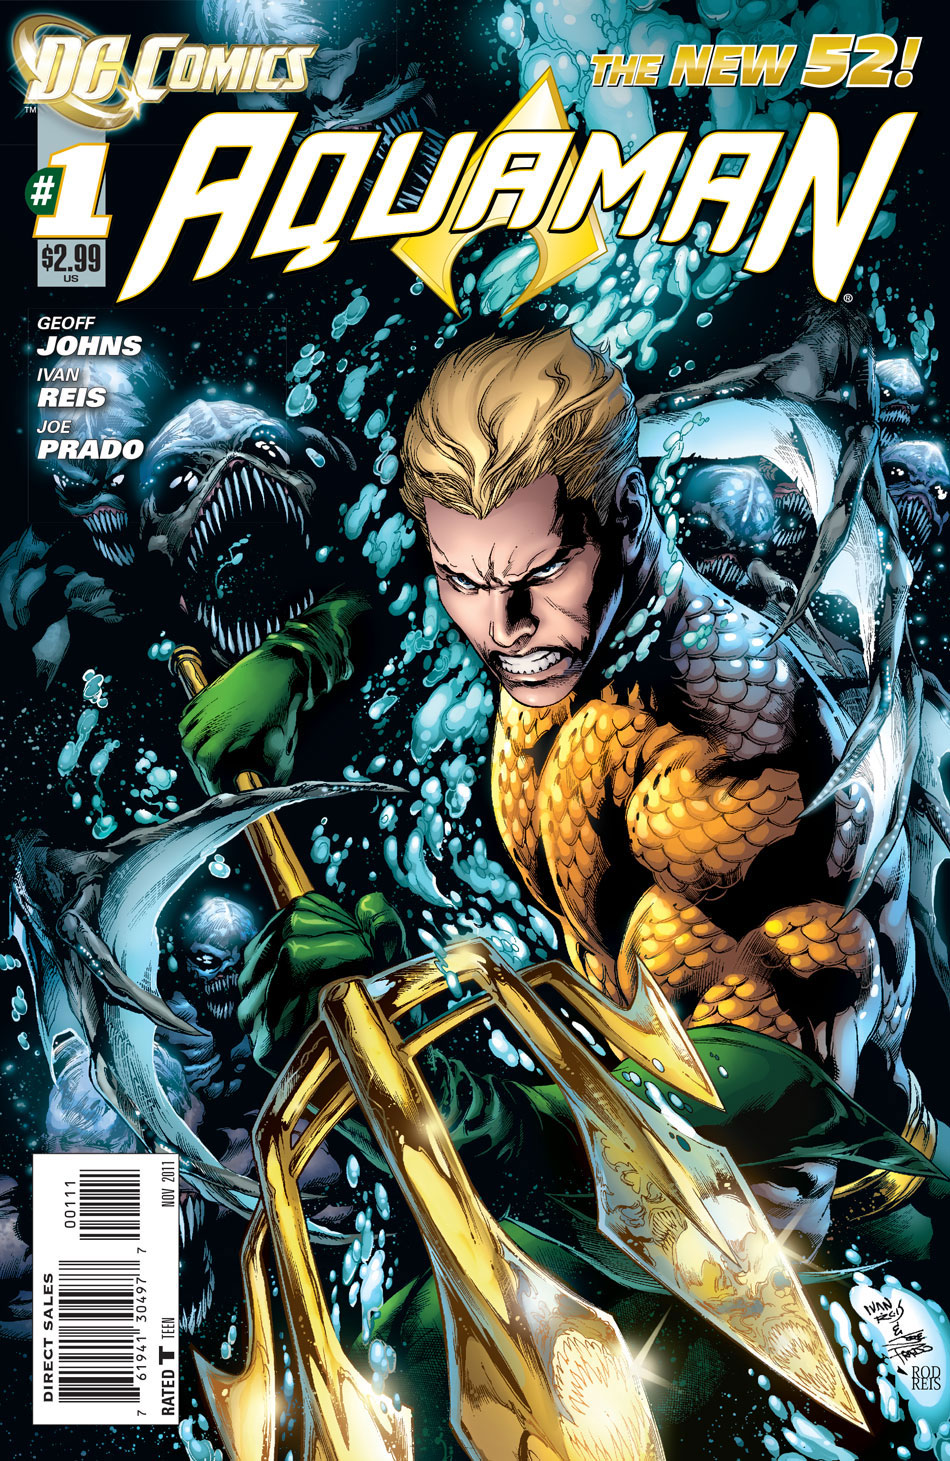 Aquaman #1 cover by Ivan Reis, Joe Prado and Rod Reis